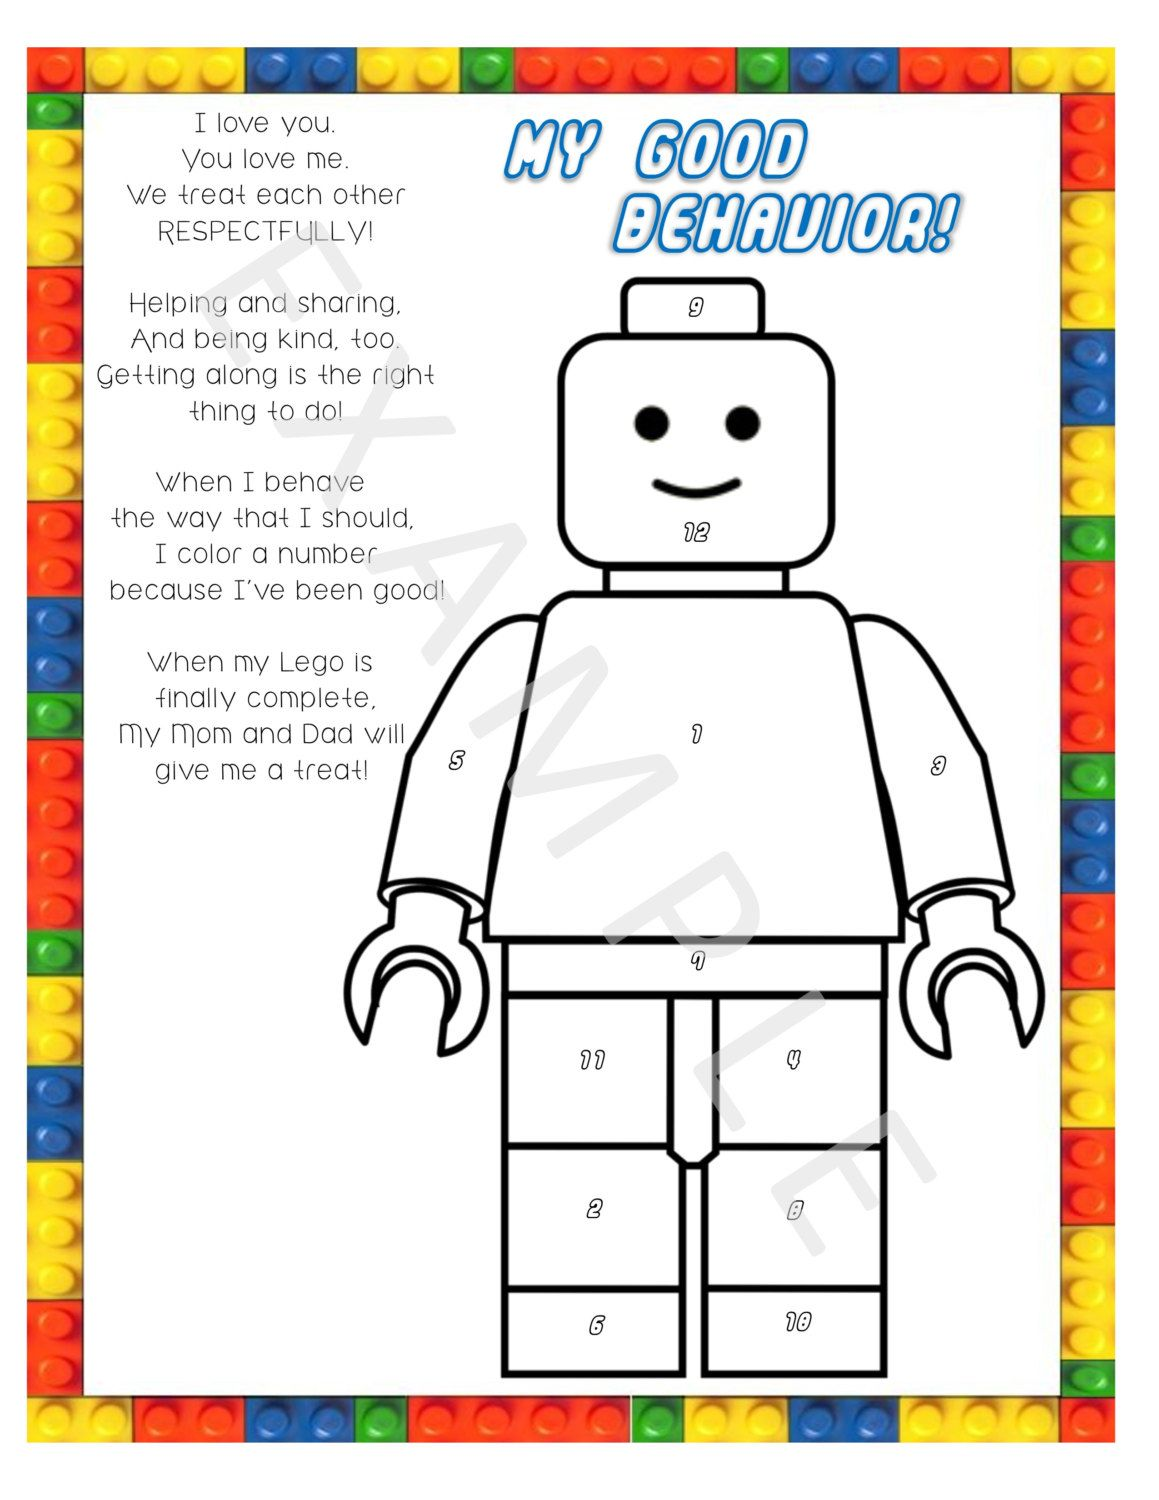 Color The Number Kids Lego Behavior Chart By Dunnwiththree